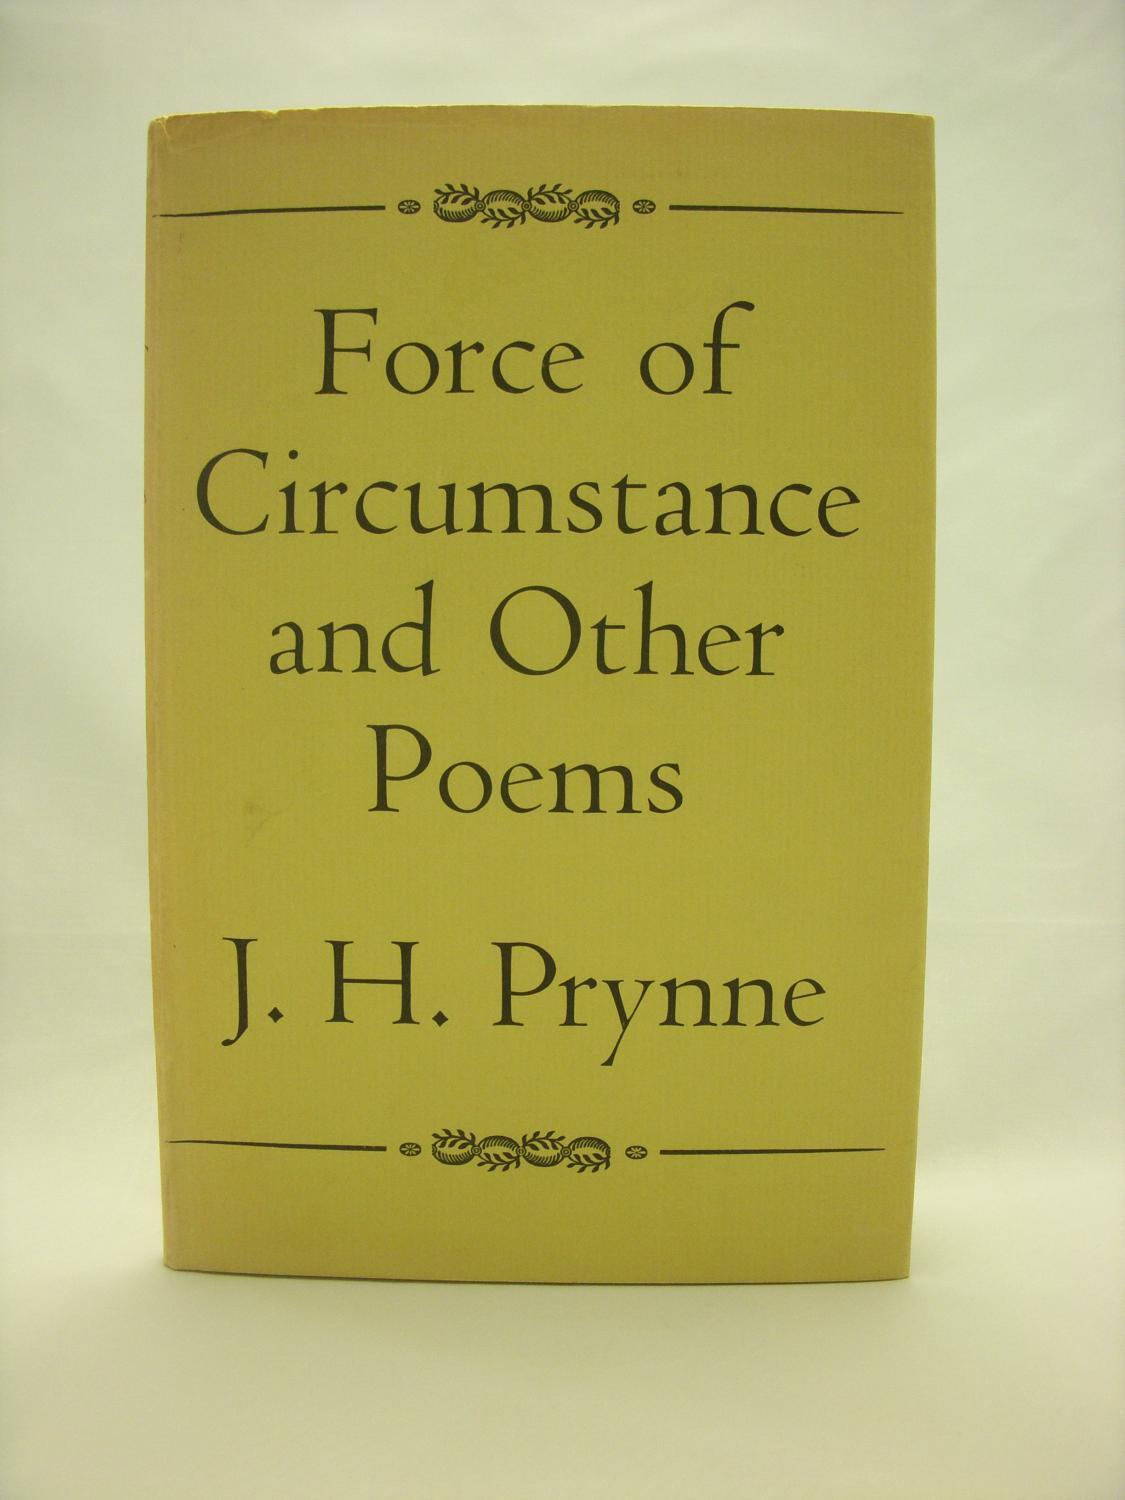 the force of circumstance Definition of circumstances in the idioms dictionary don't tell me that you started drinking as a force of circumstance—there are plenty of other choices.